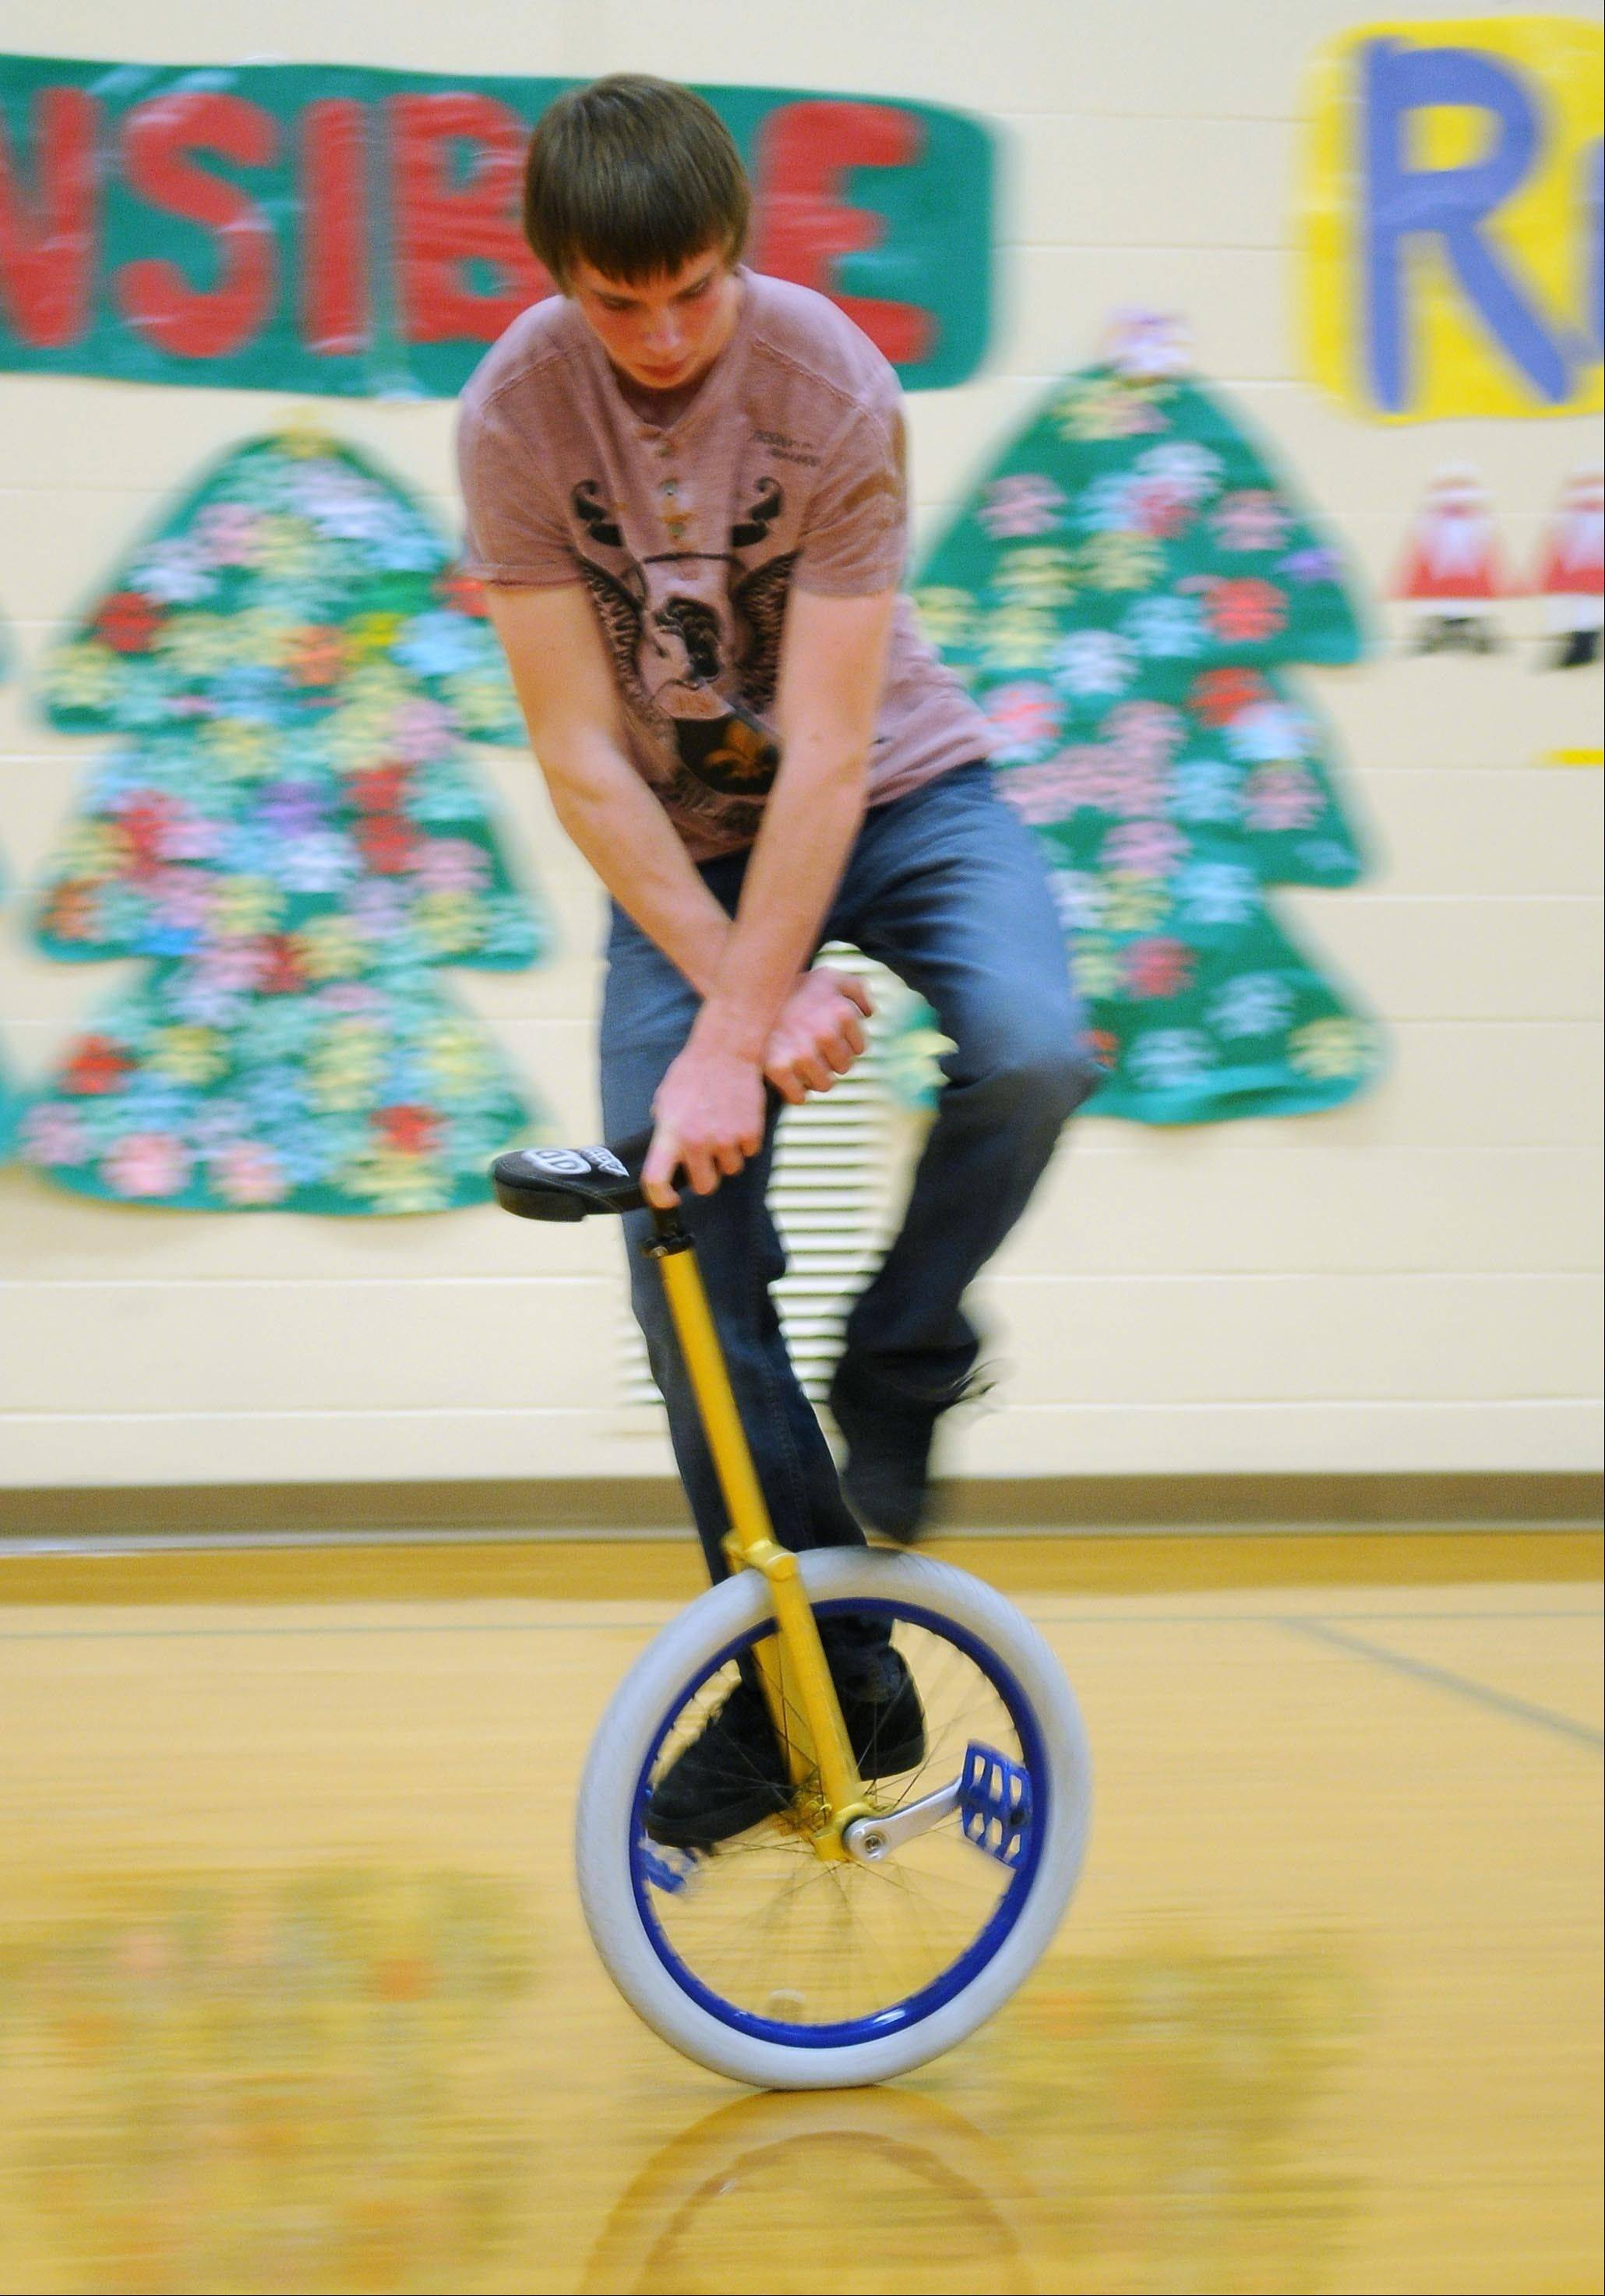 Ben Koehler, sixteen years-old, practices tricks on his unicycle in the gymnasium at St. Croix Central Elementary School in Roberts, Wis. Ben participates in a community education program hosted by the St. Croix Central School district that welcomes young and old to learn and master the unicycle with the assistance of the Twin Cities Unicycle Club.